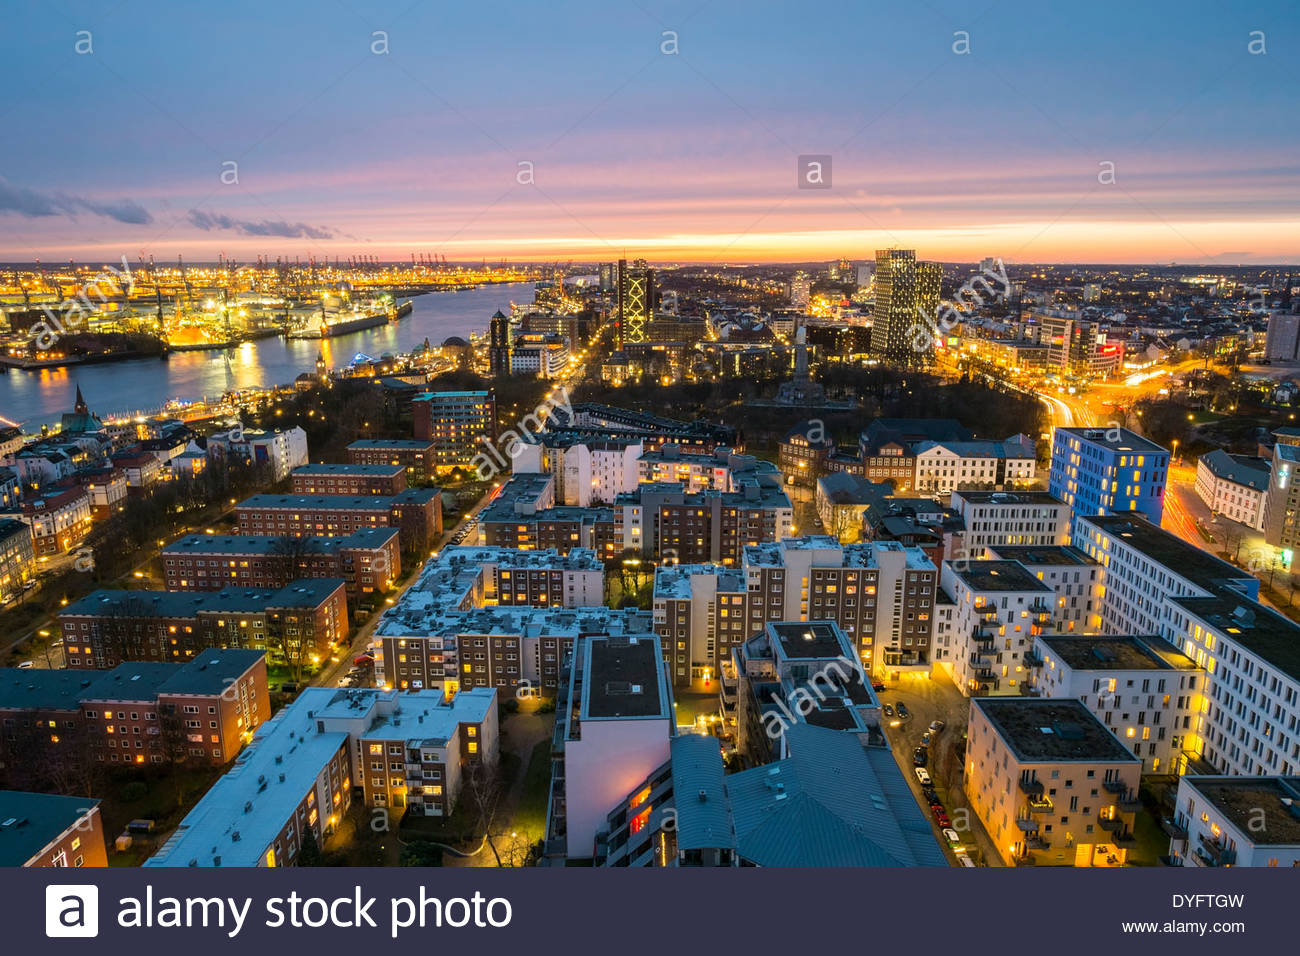 high angle view of central hamburg city skyline at night. Black Bedroom Furniture Sets. Home Design Ideas